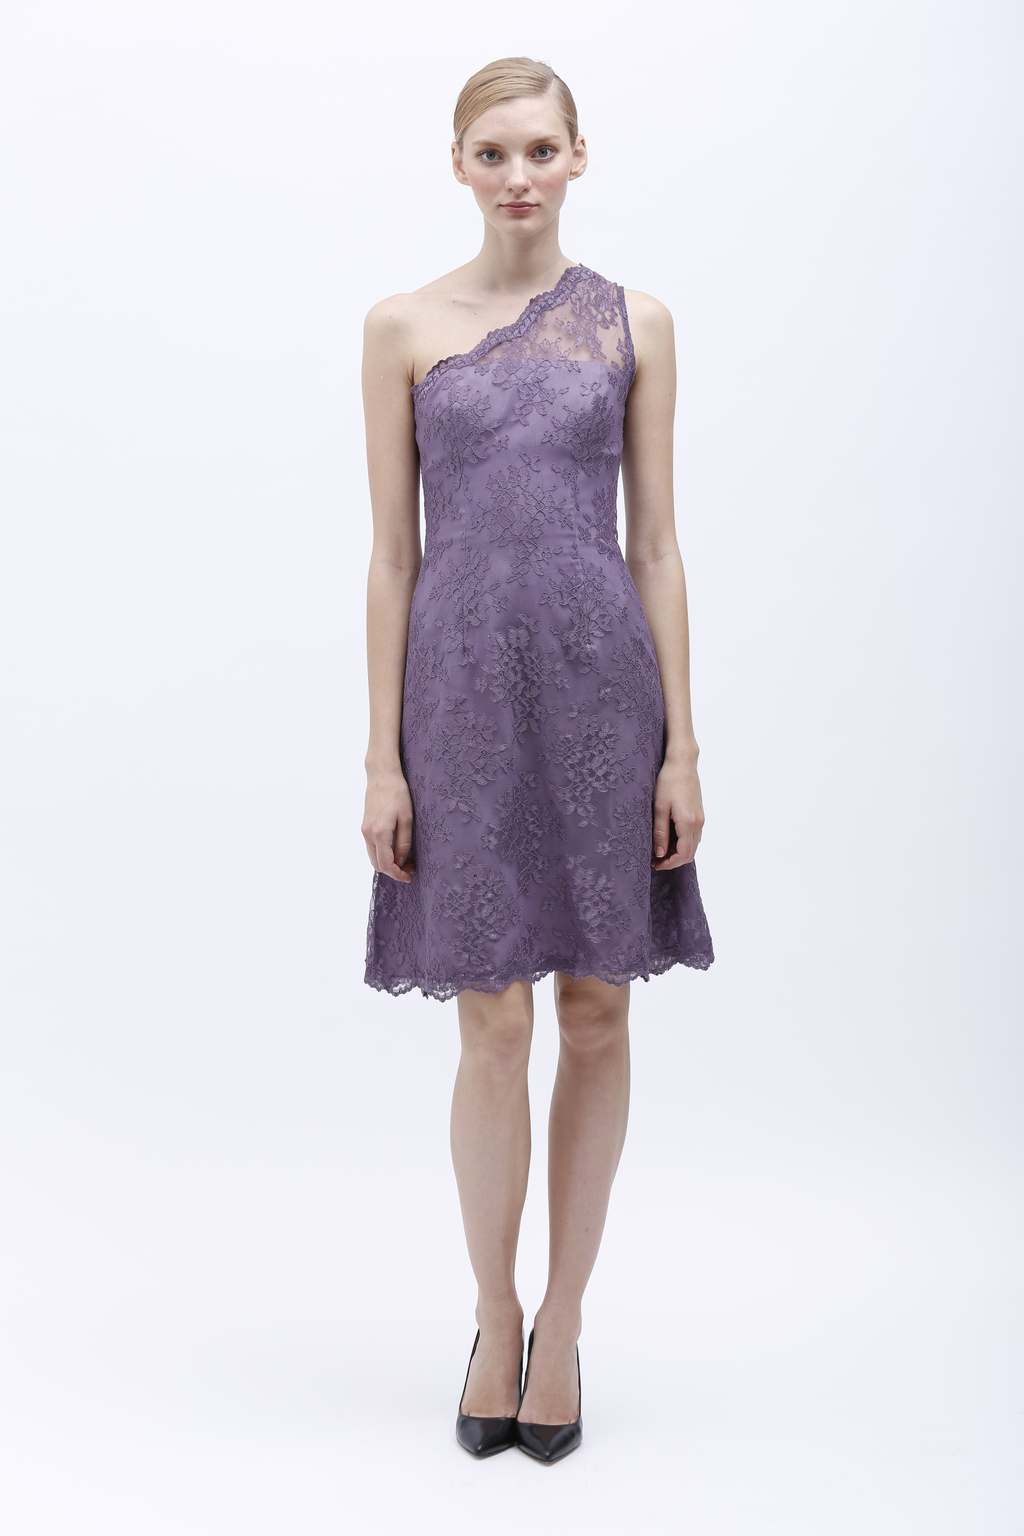 Monique-lhuillier-spring-2014-bridesmaid-dress-450148_violet.full